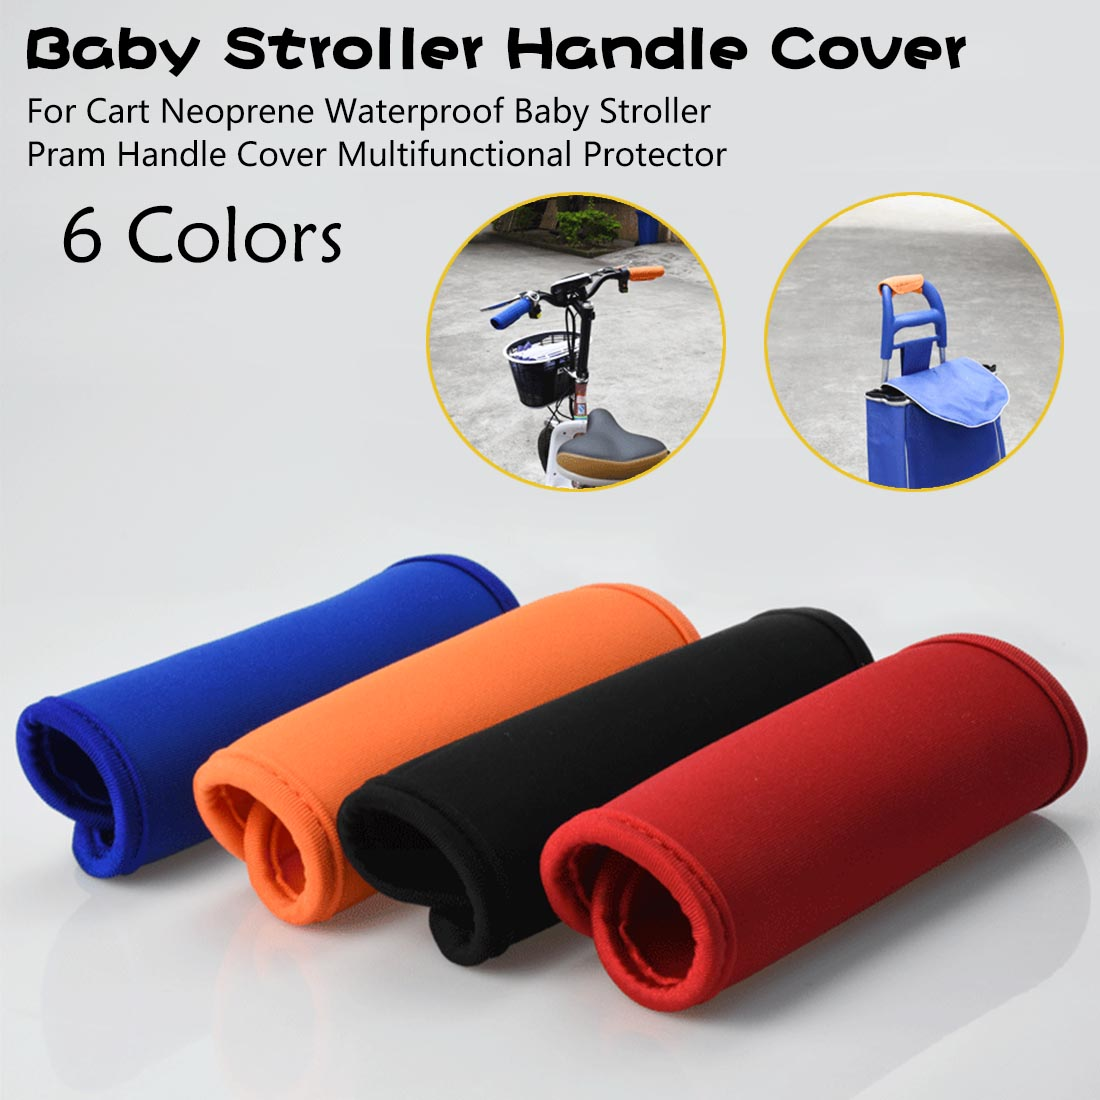 Baby Stroller Pram Handle Cover Multifunctional Protector Baby Stroller Handle Cover For Cart Neoprene Waterproof